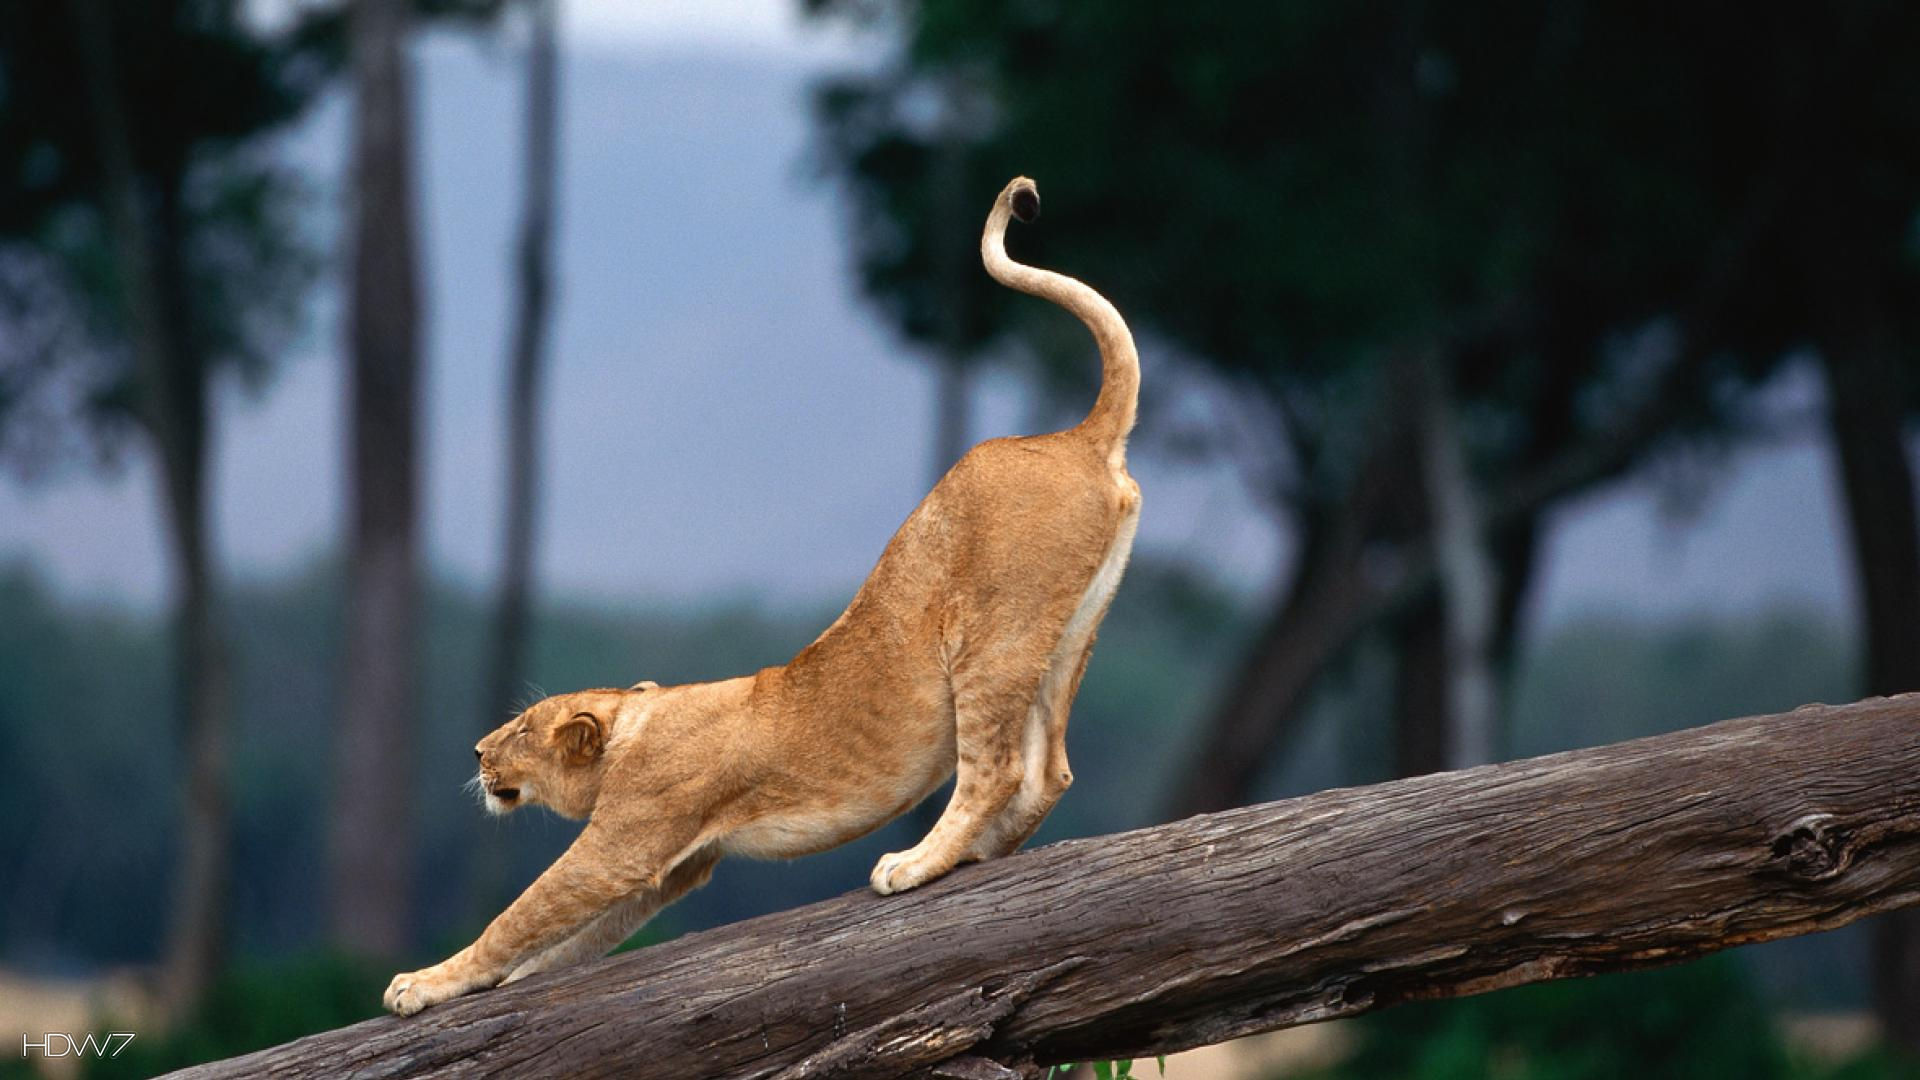 lion cub stretching 1080p | HD wallpaper gallery #421